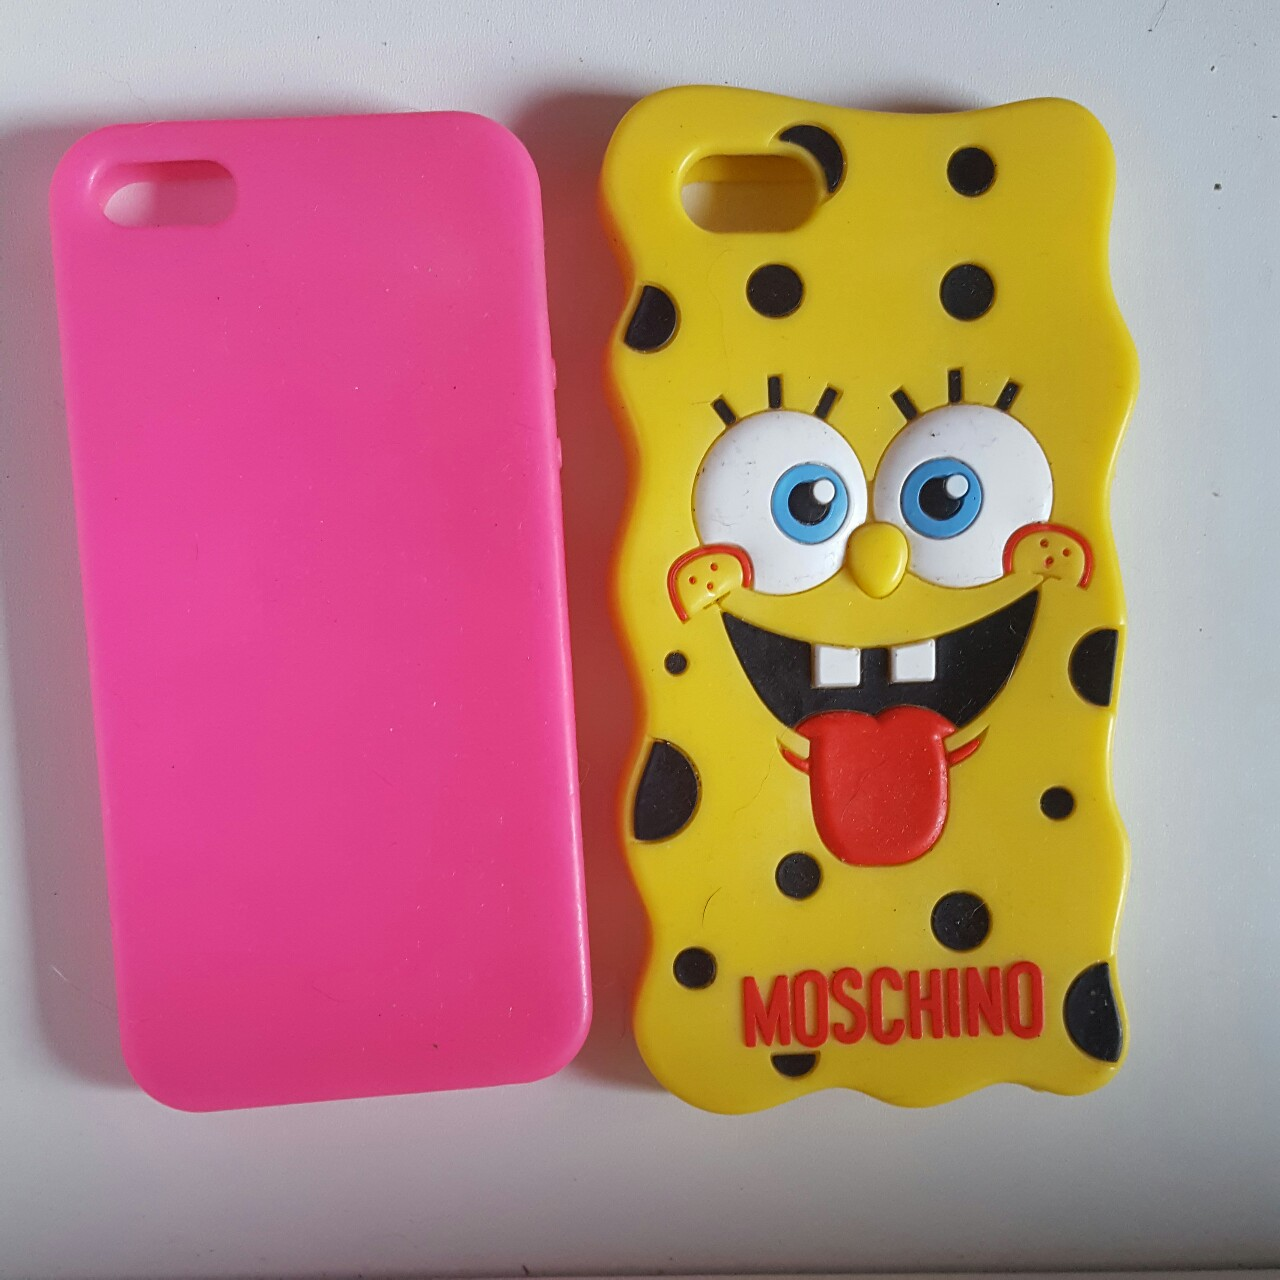 custodia iphone 5s moschino